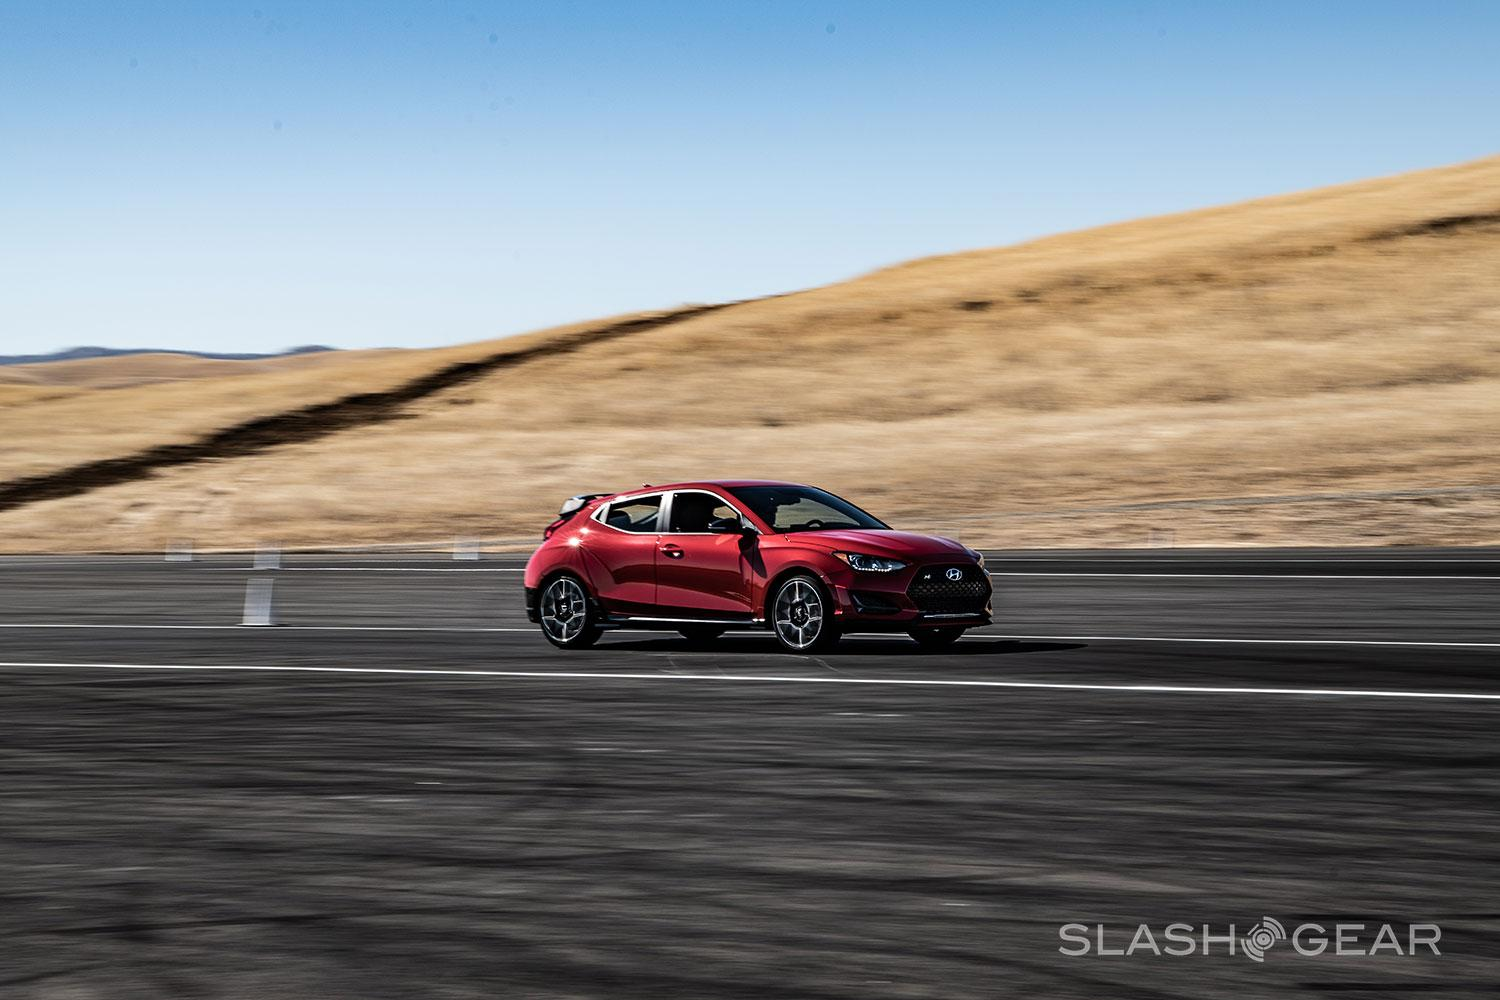 2019 Hyundai Veloster N Turbo First Drive: Unleashing the Hulk